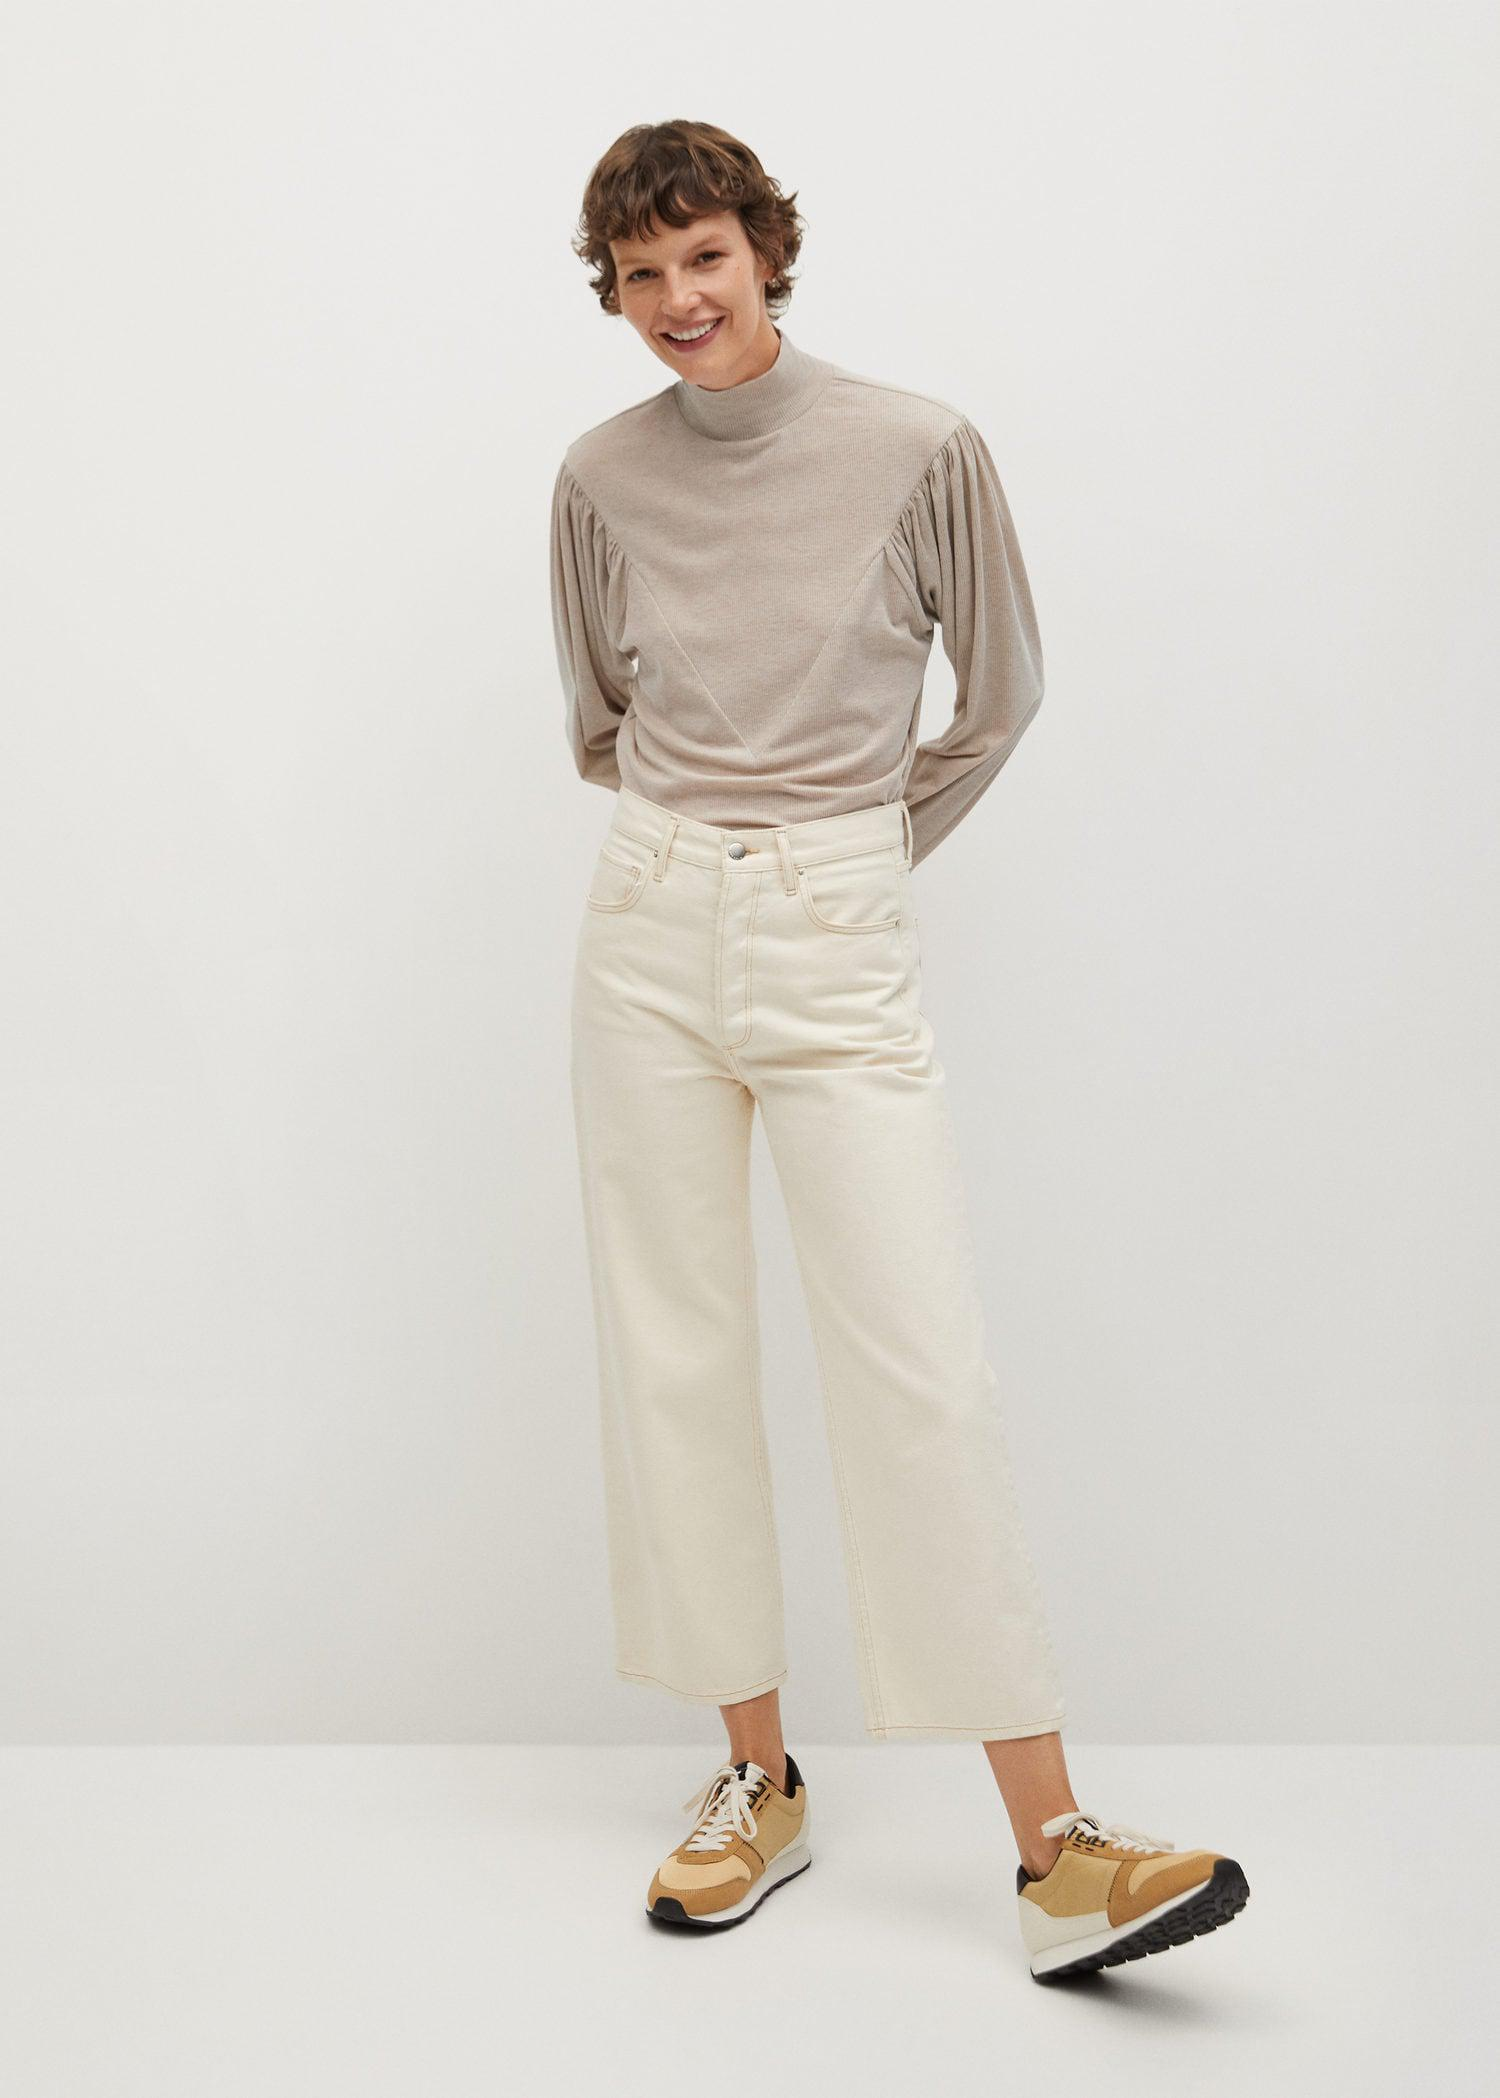 T-shirt with puffed sleeves 1